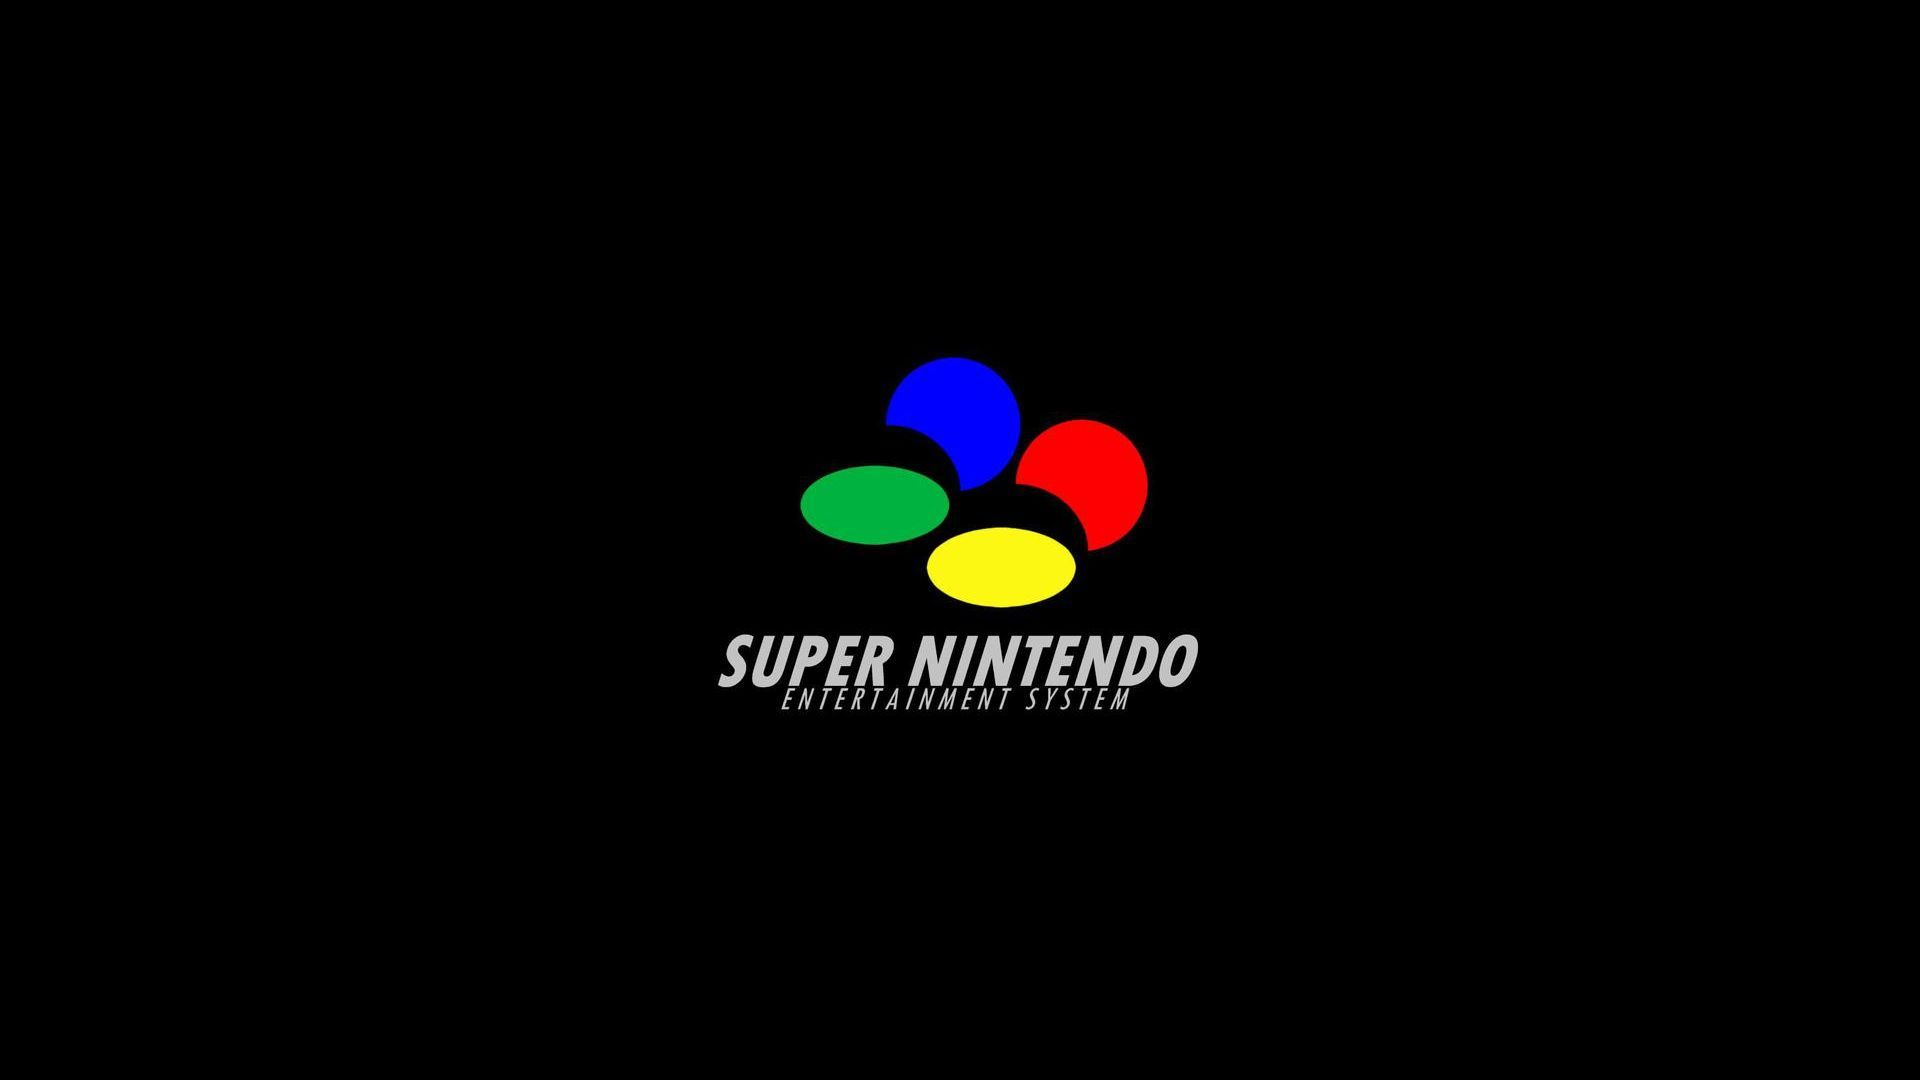 Snes Wallpaper - WallpaperSafari